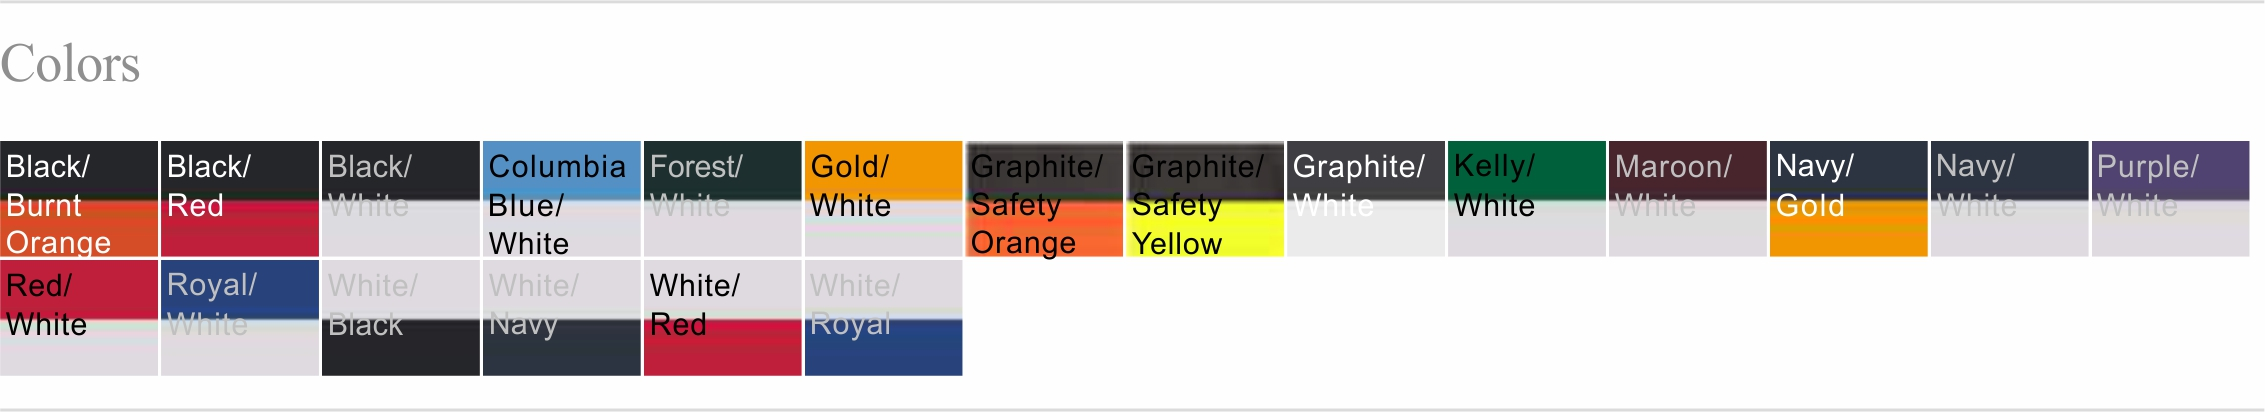 2144 Color Chart